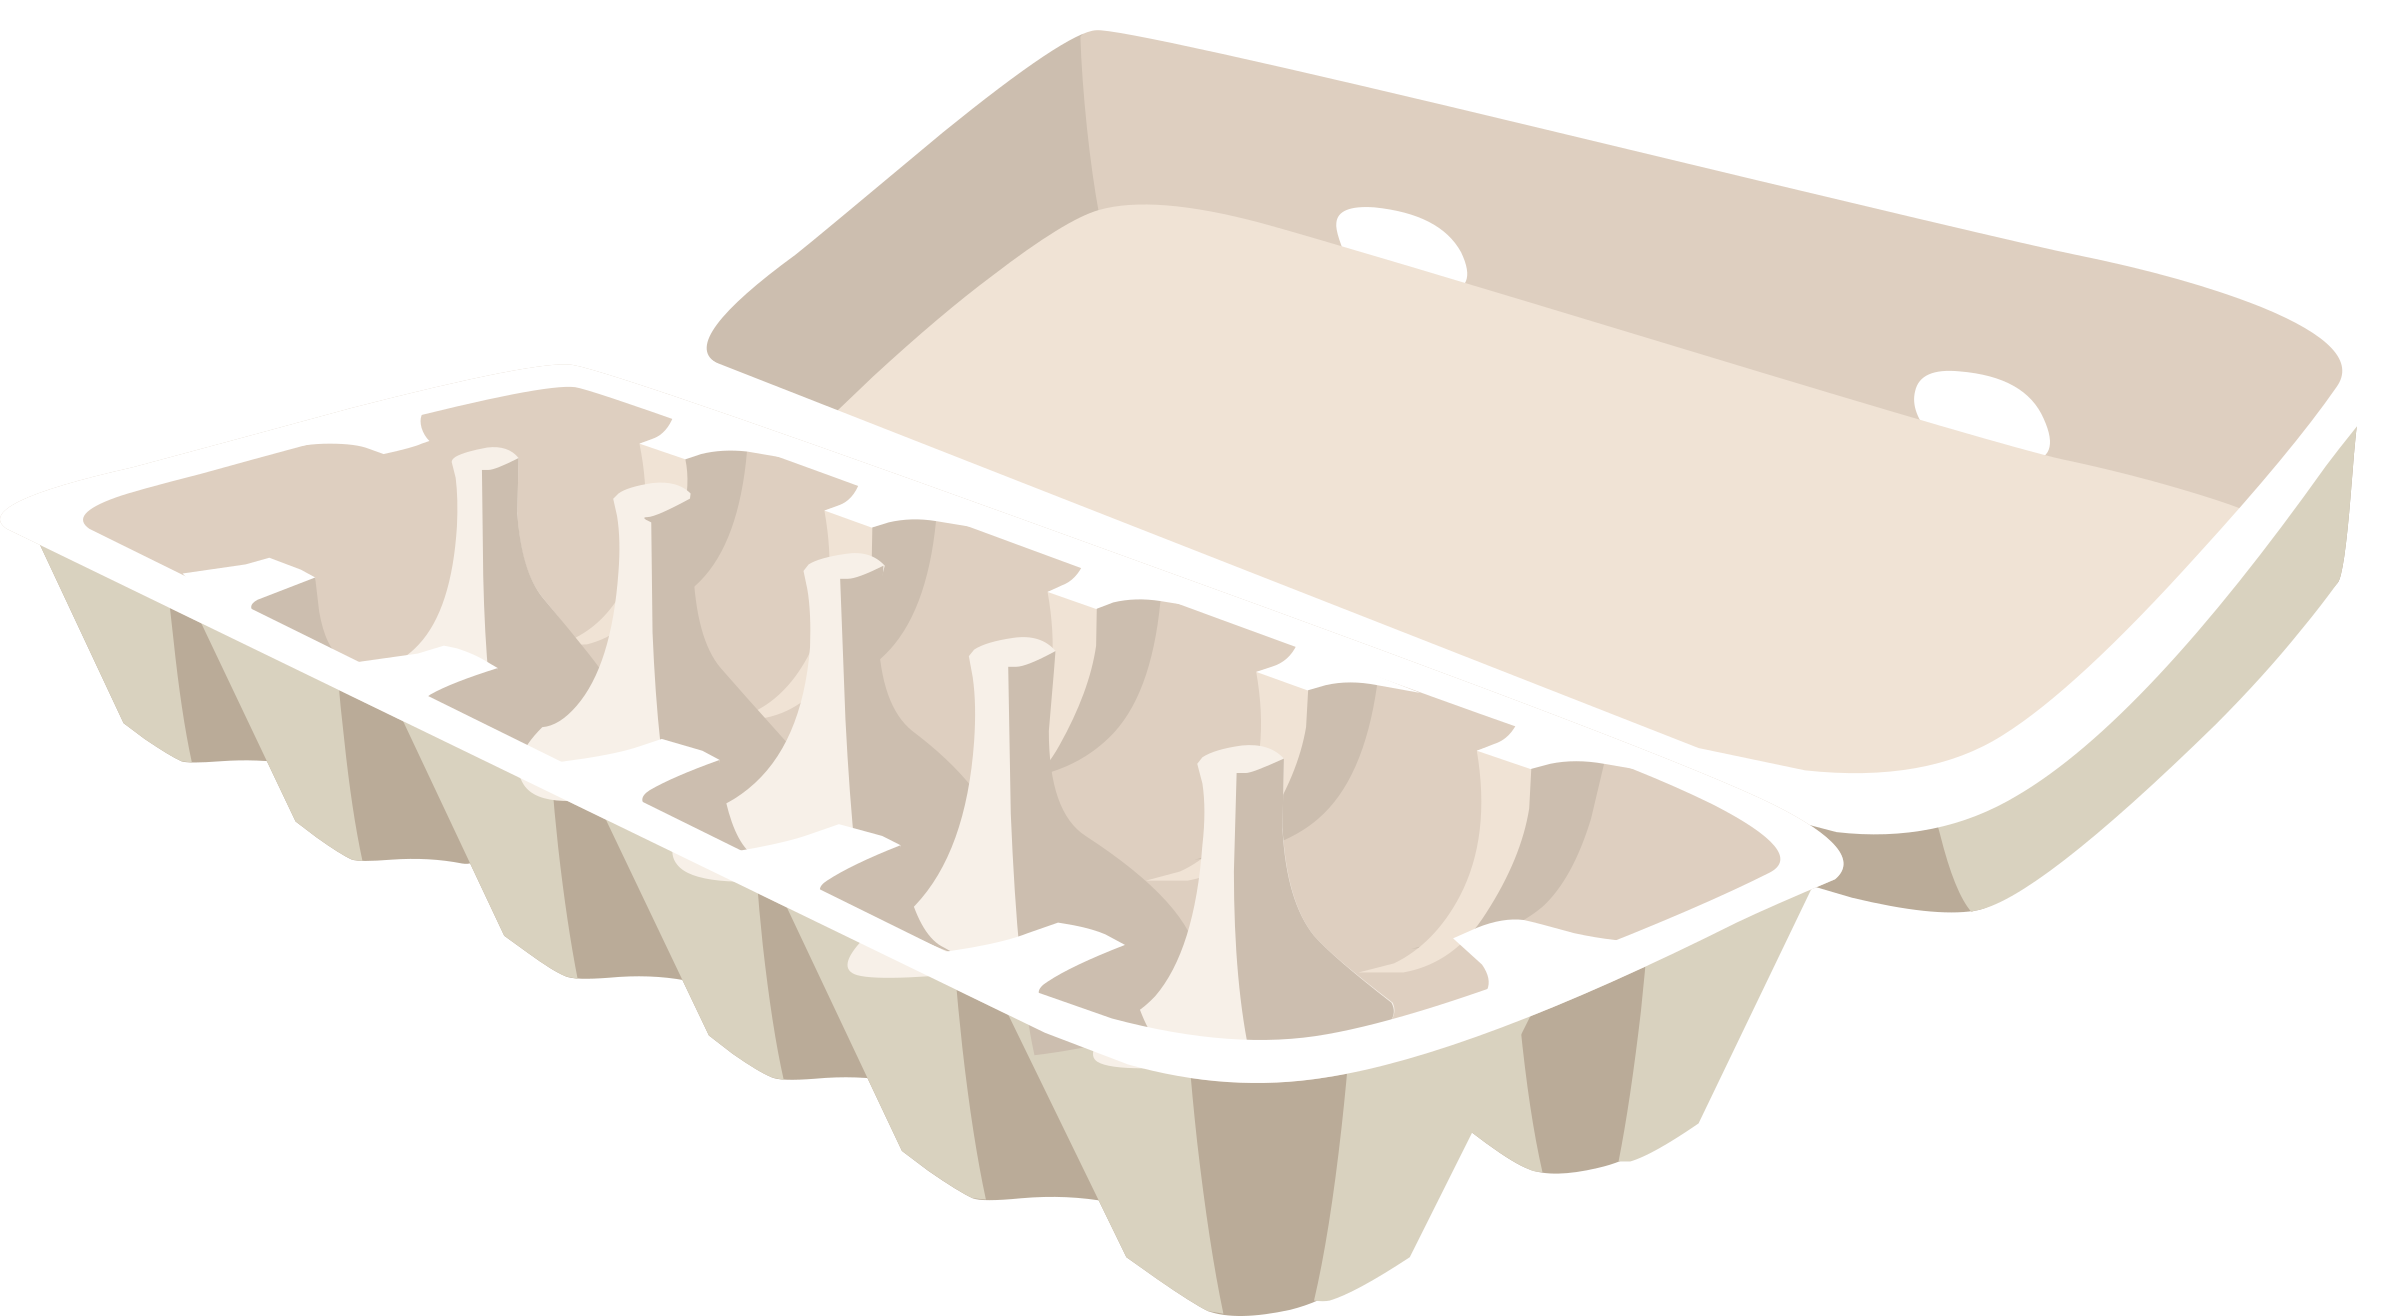 Egg carton png. Misc icons free and